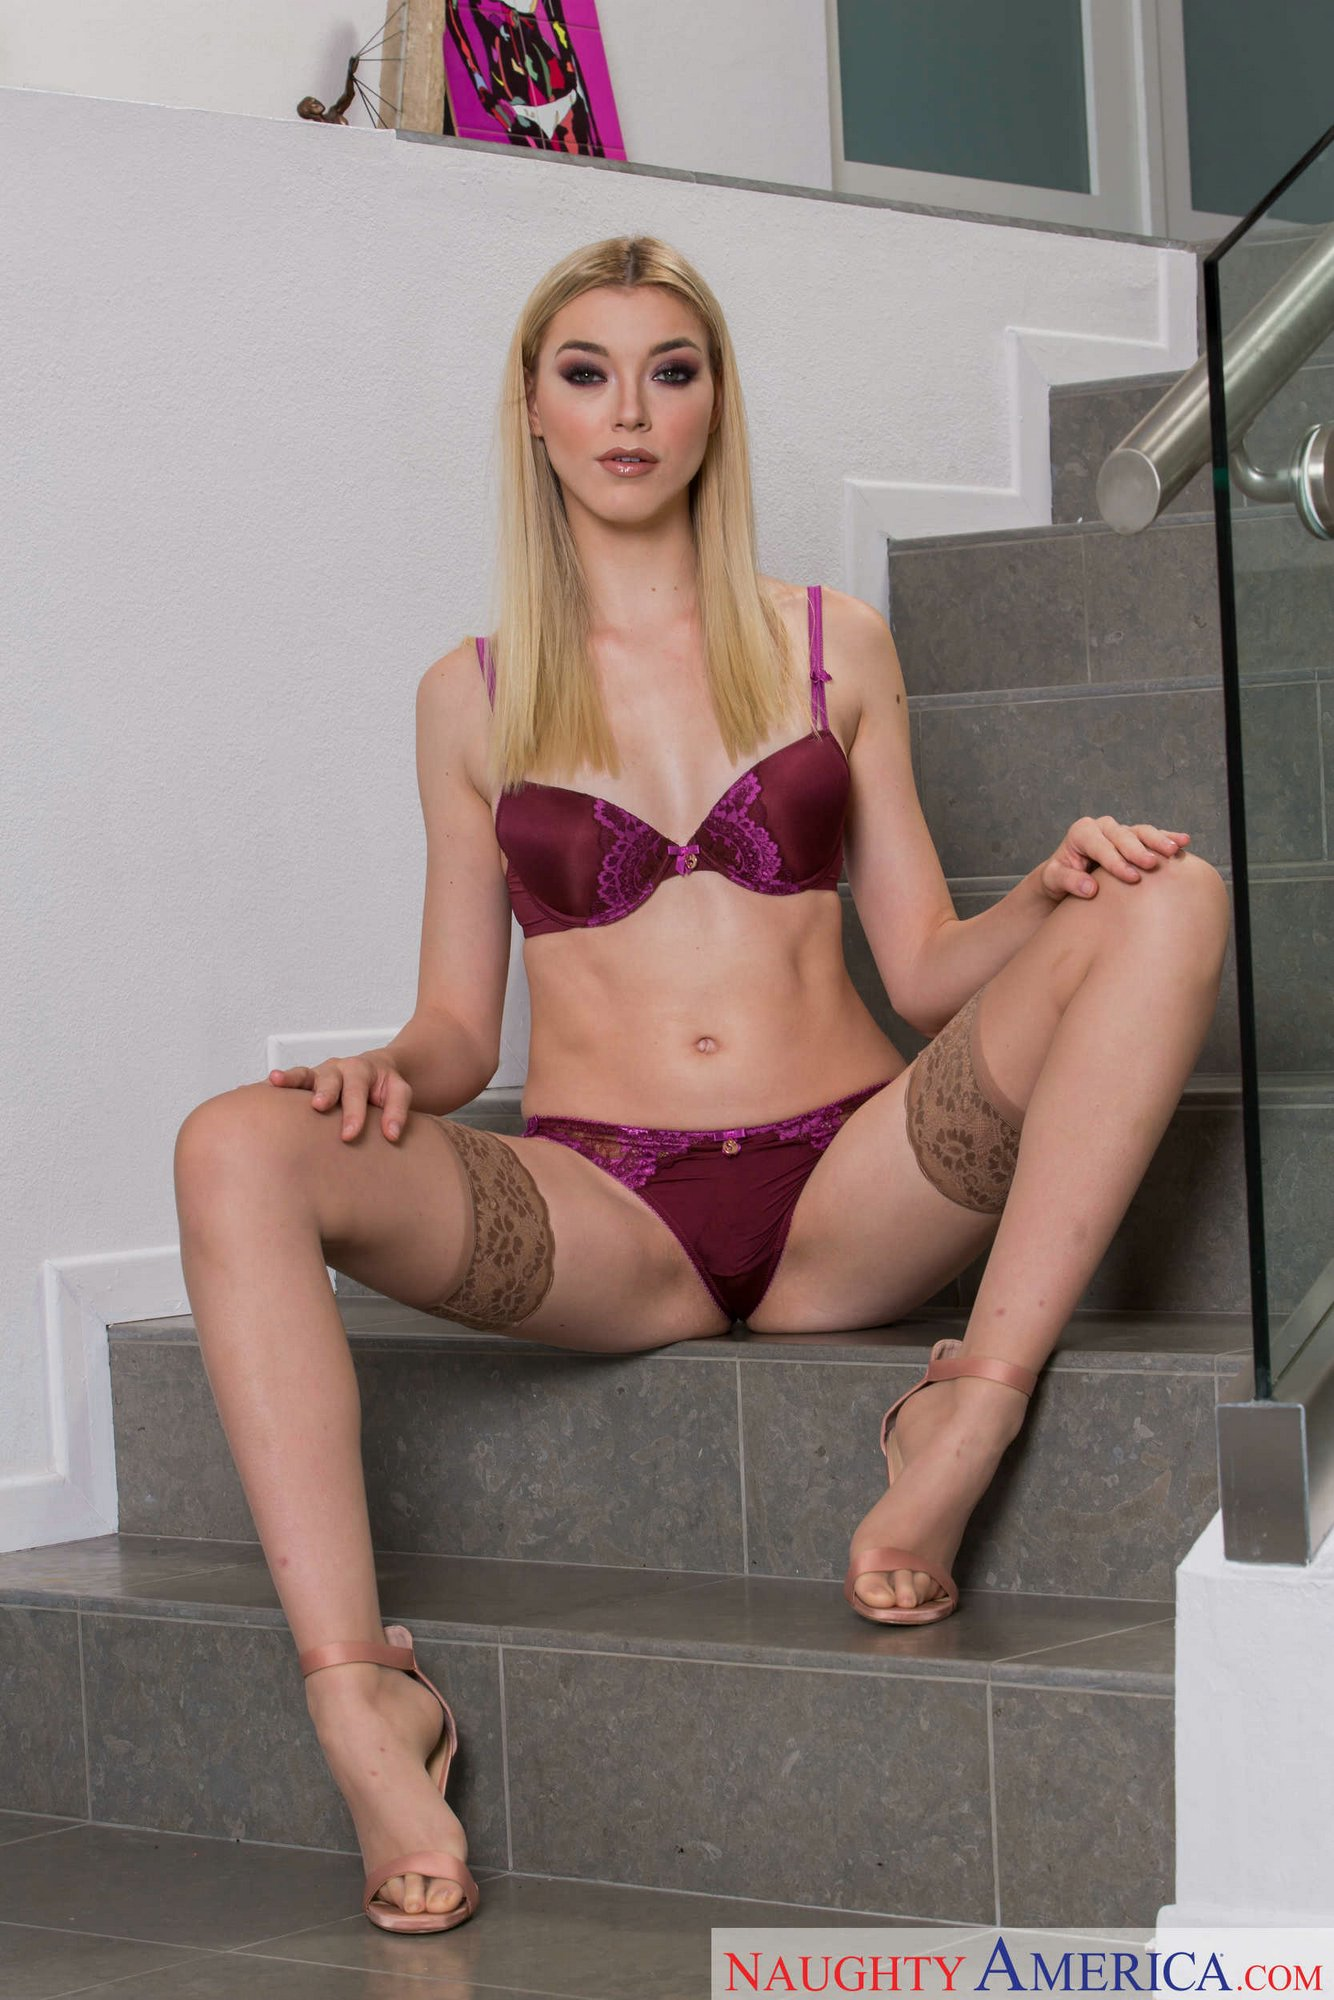 Anny aurora stockings